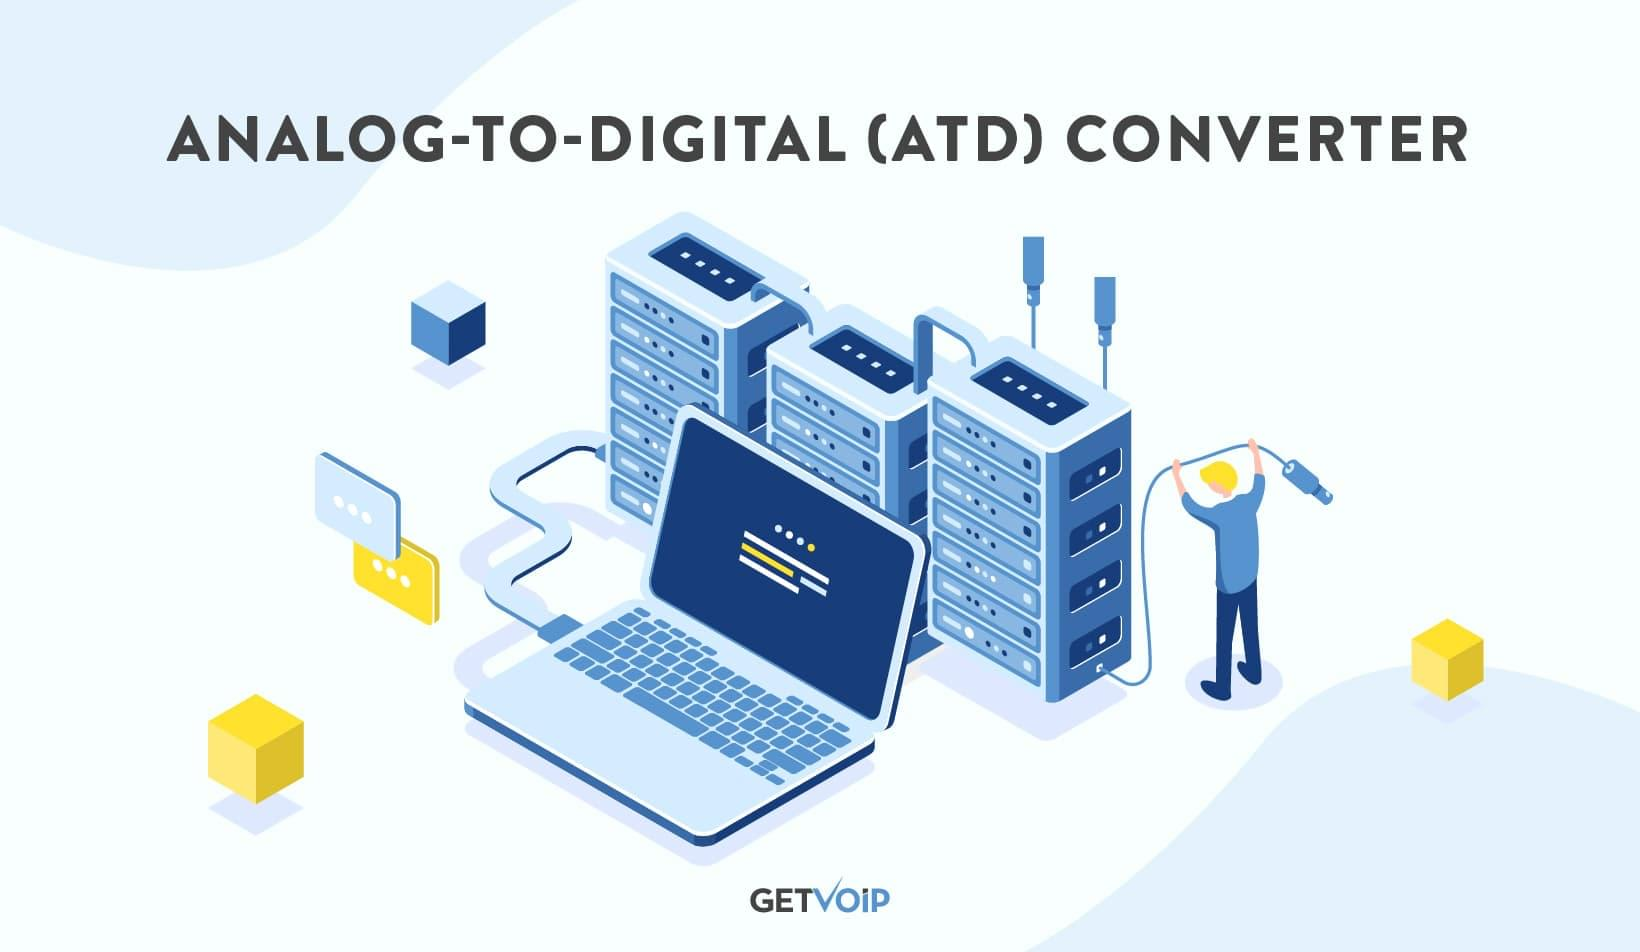 Analog-to-Digital (ATD) Converter